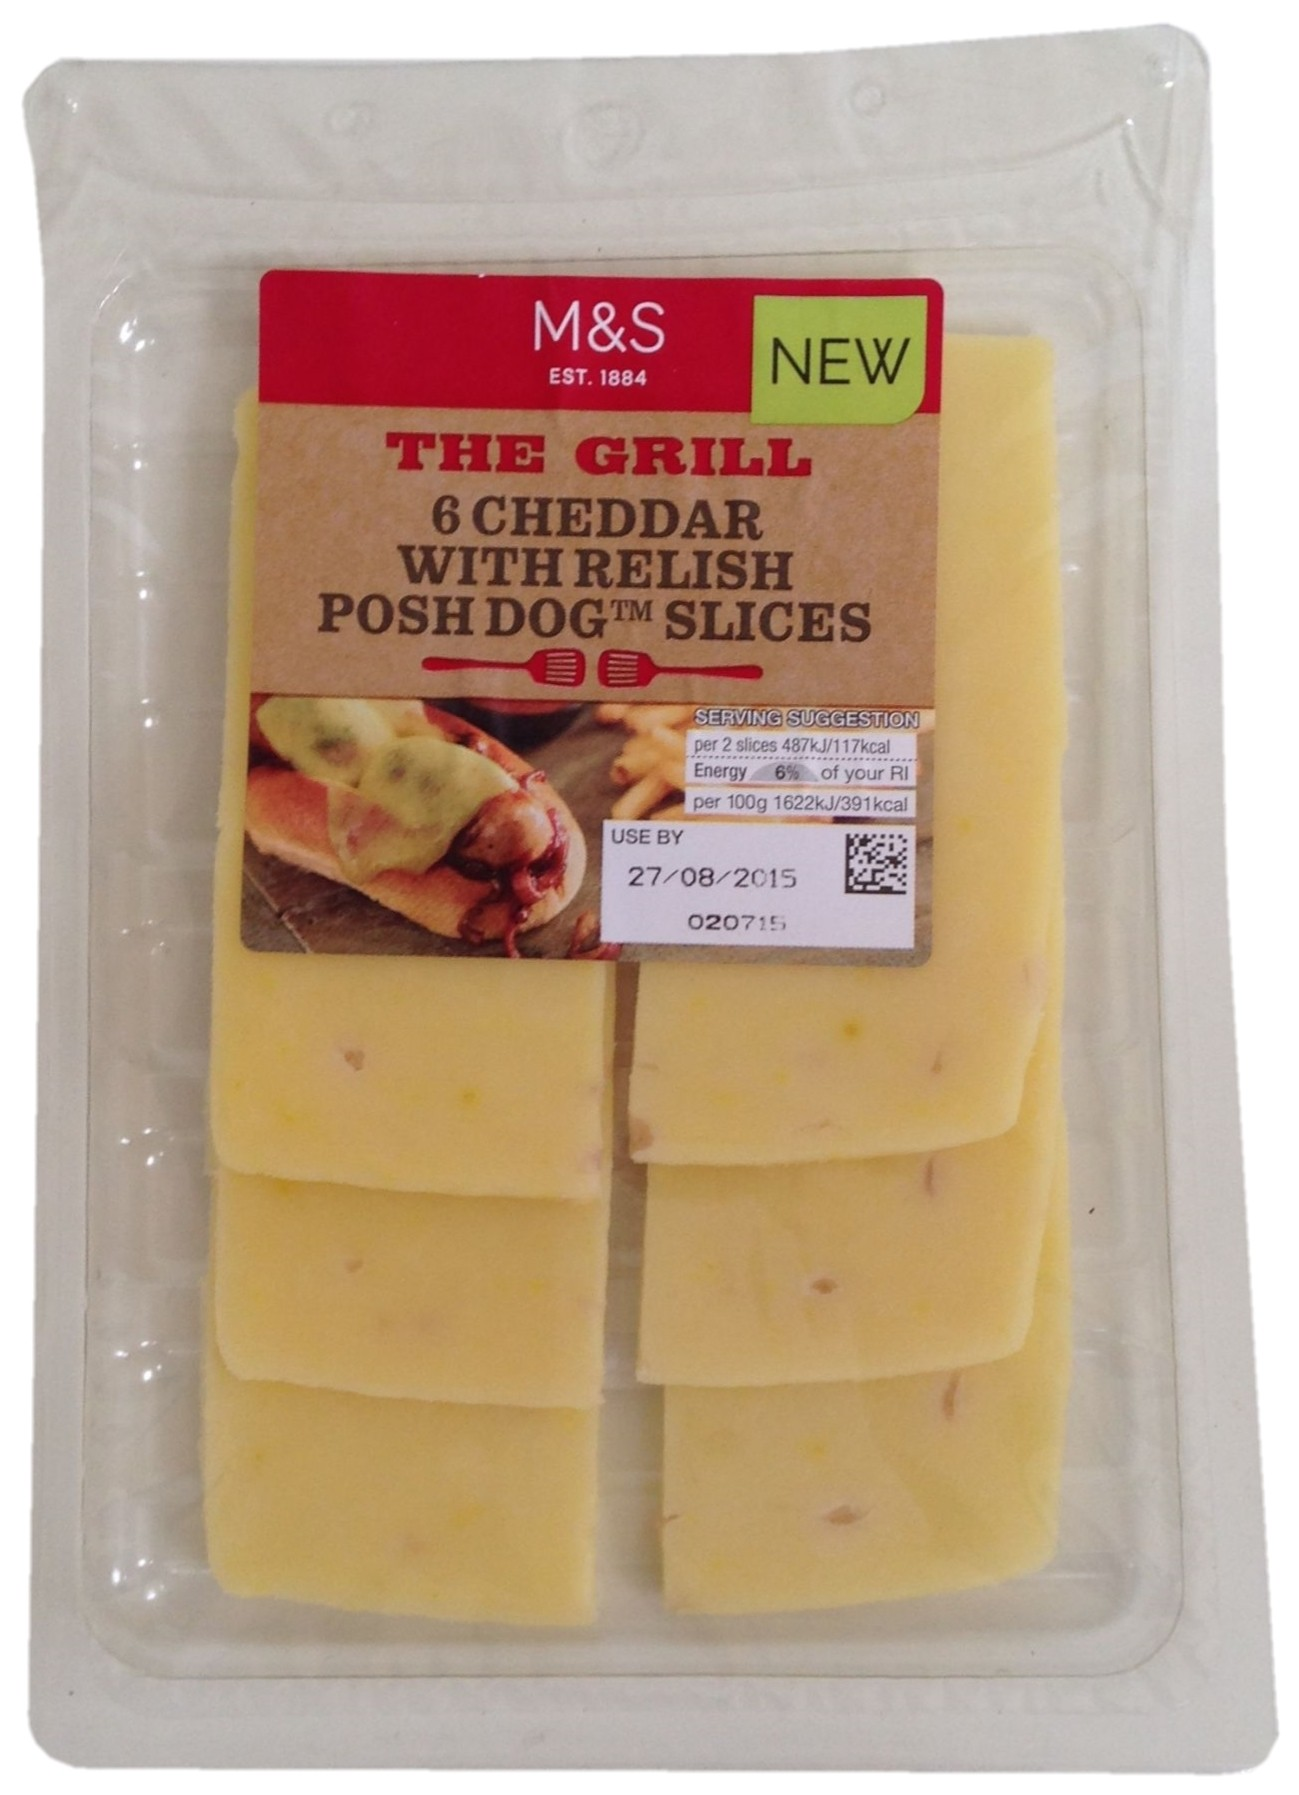 Cheddar with Relish Posh Dog Slices